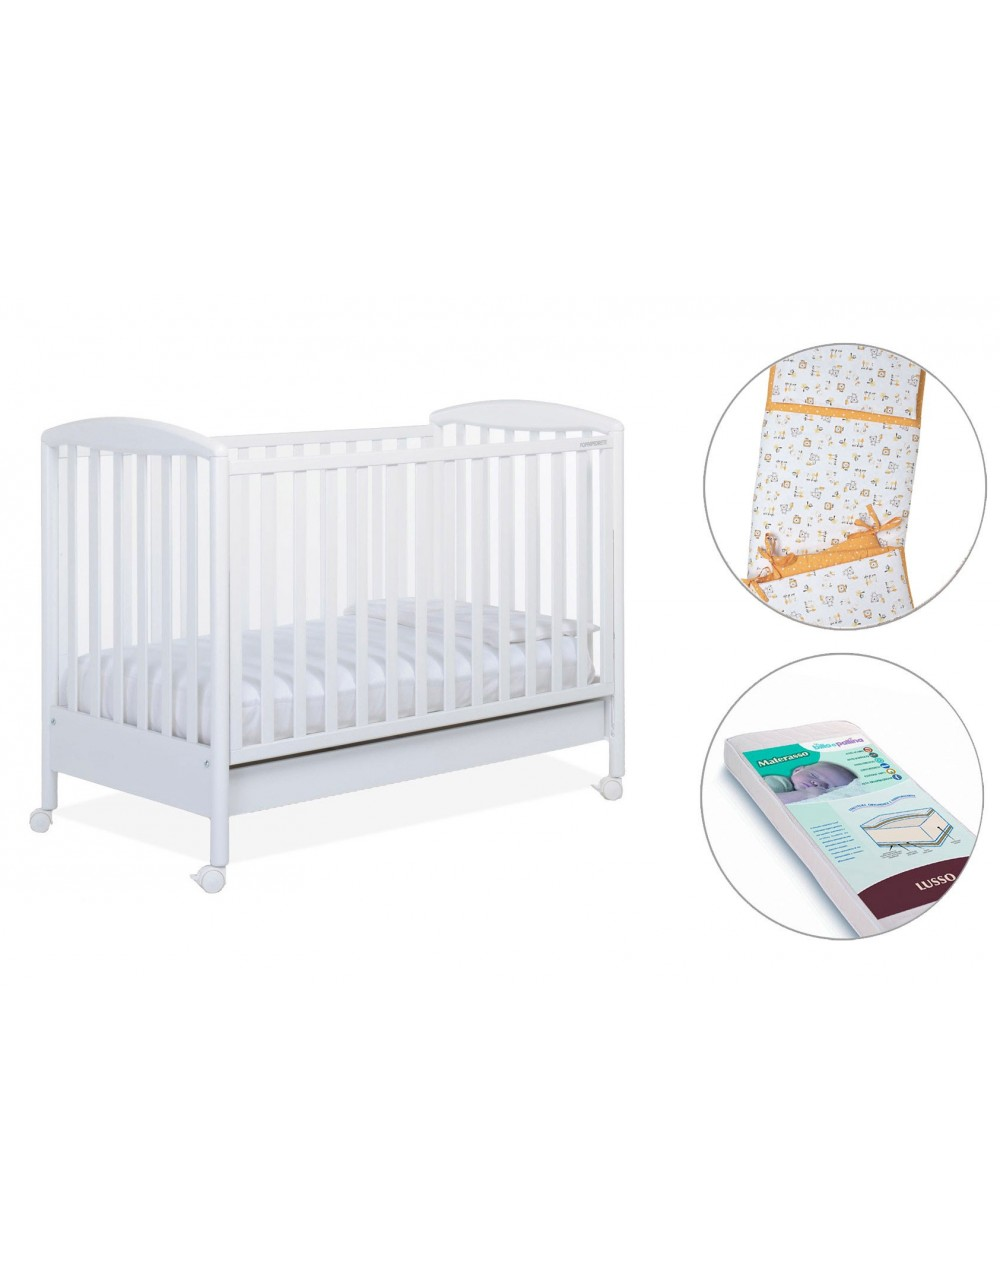 https://www.babychicstore.it/11854-large_default-1000-1282/offerta-lettino-piumone-foppapedretti.jpg